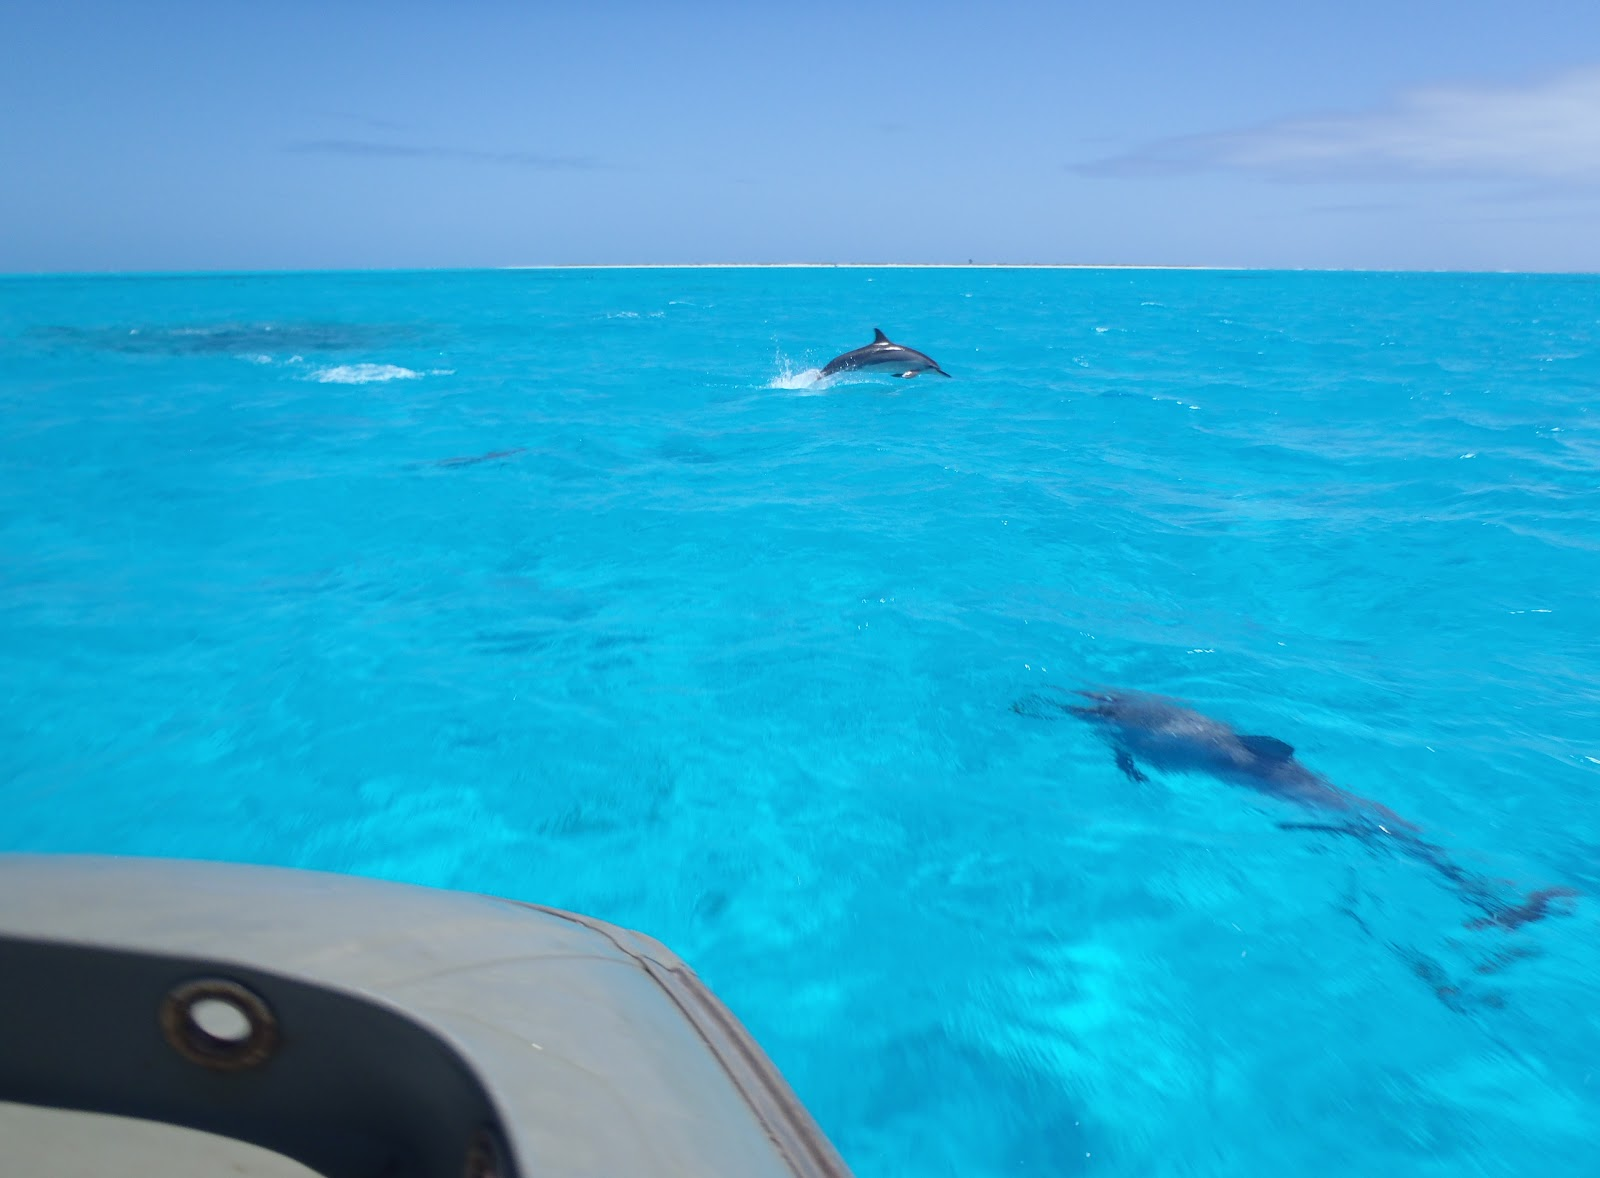 The dolphins came to escort us to the island